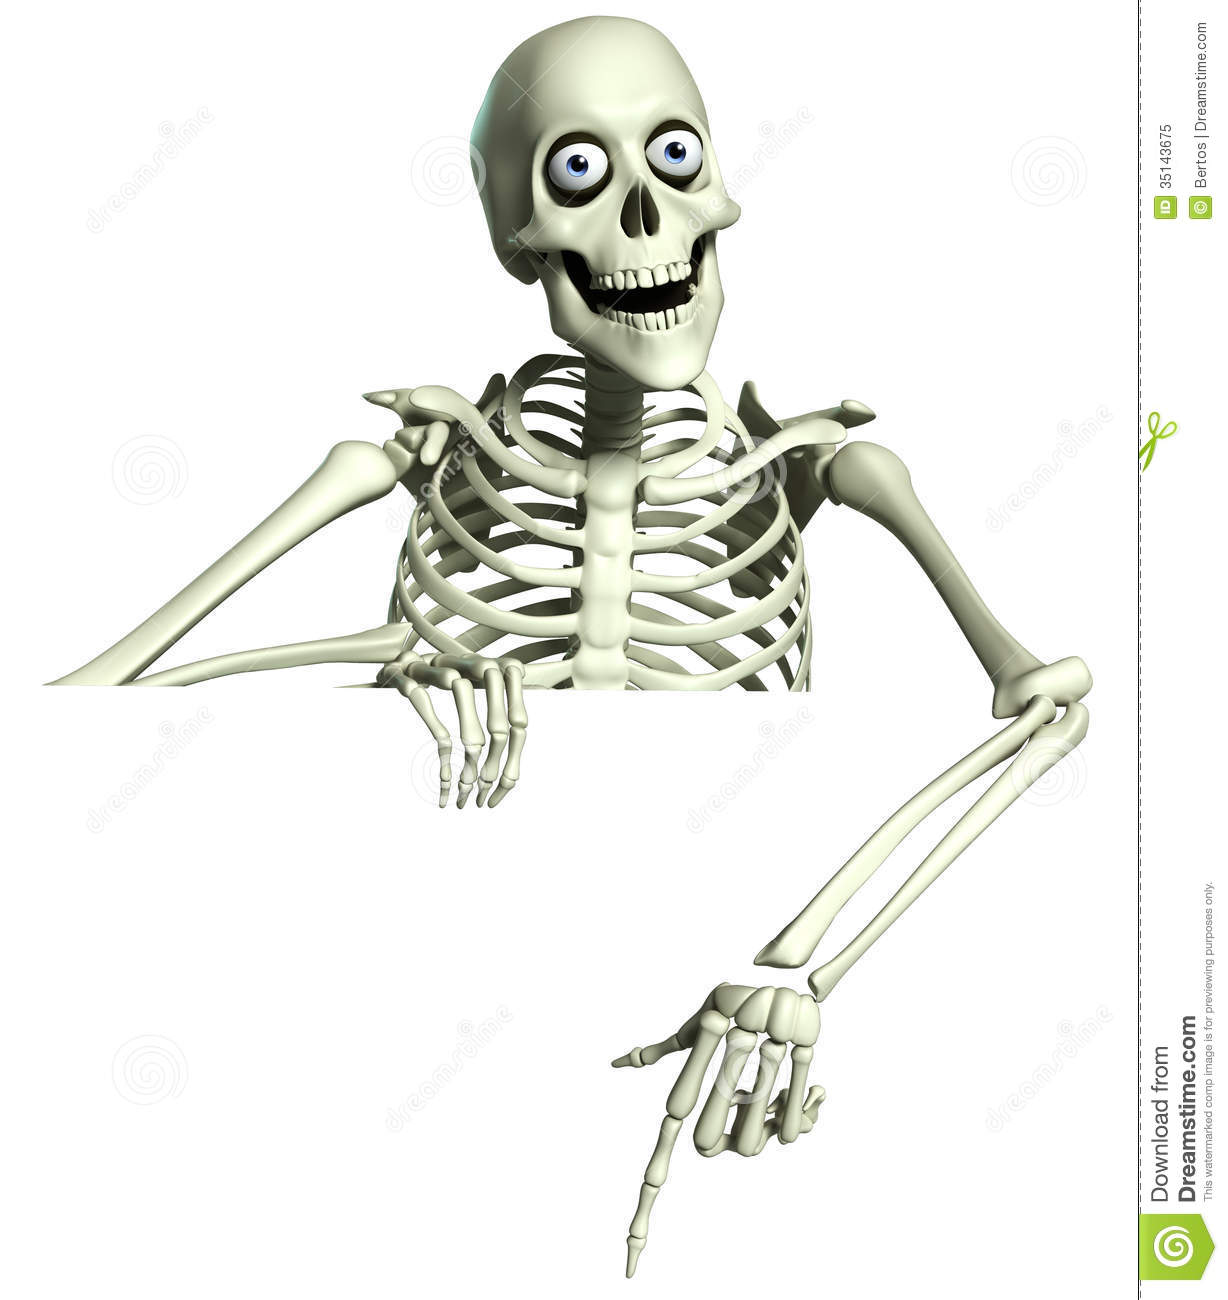 3d Cartoon Skeleton Royalty Free Stock Photo - Image: 35143675: https://www.dreamstime.com/royalty-free-stock-photo-d-cartoon...